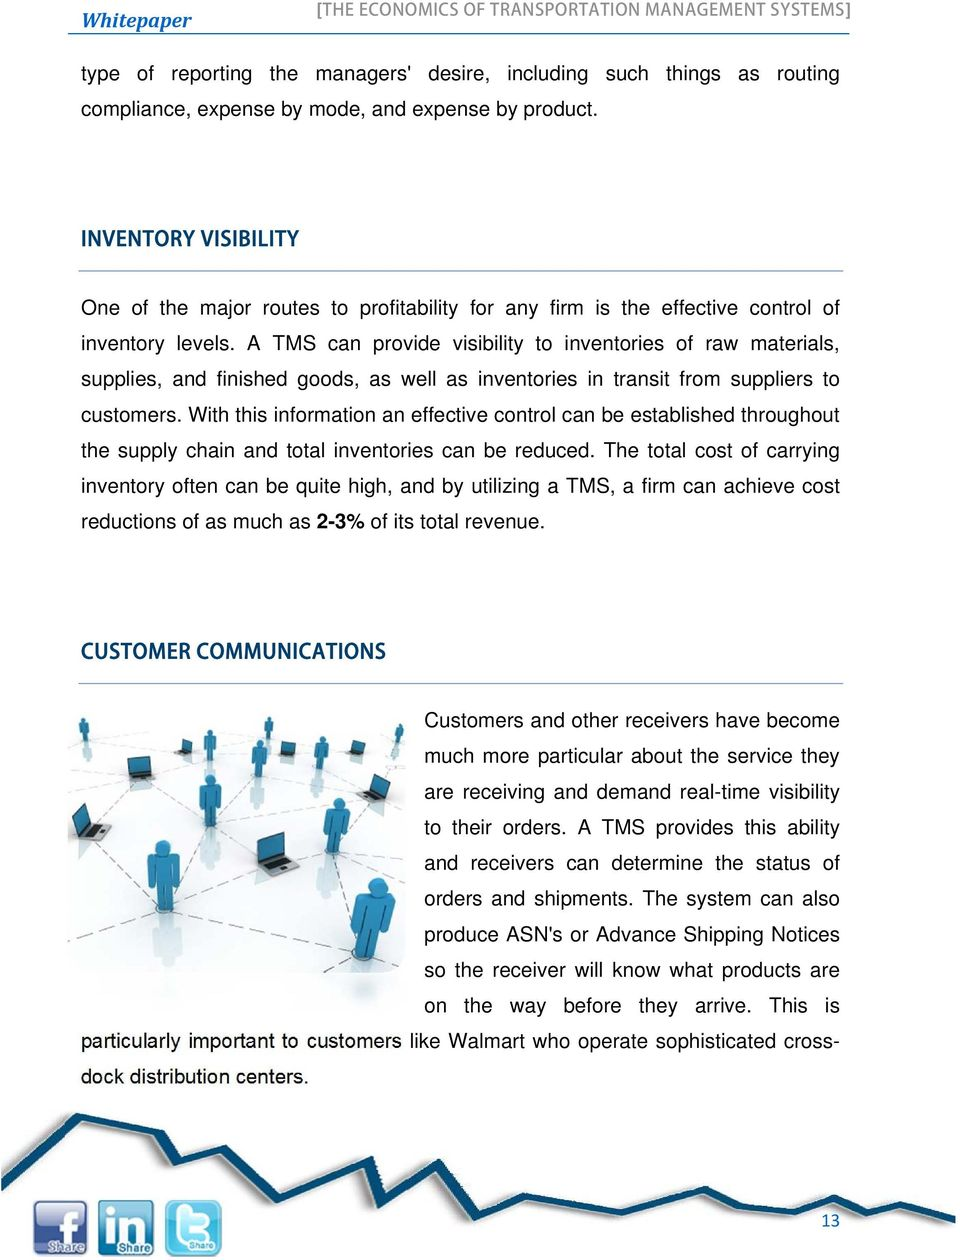 Whitepaper 2014 THE ECONOMICS OF TRANSPORTATION MANAGEMENT SYSTEMS 1